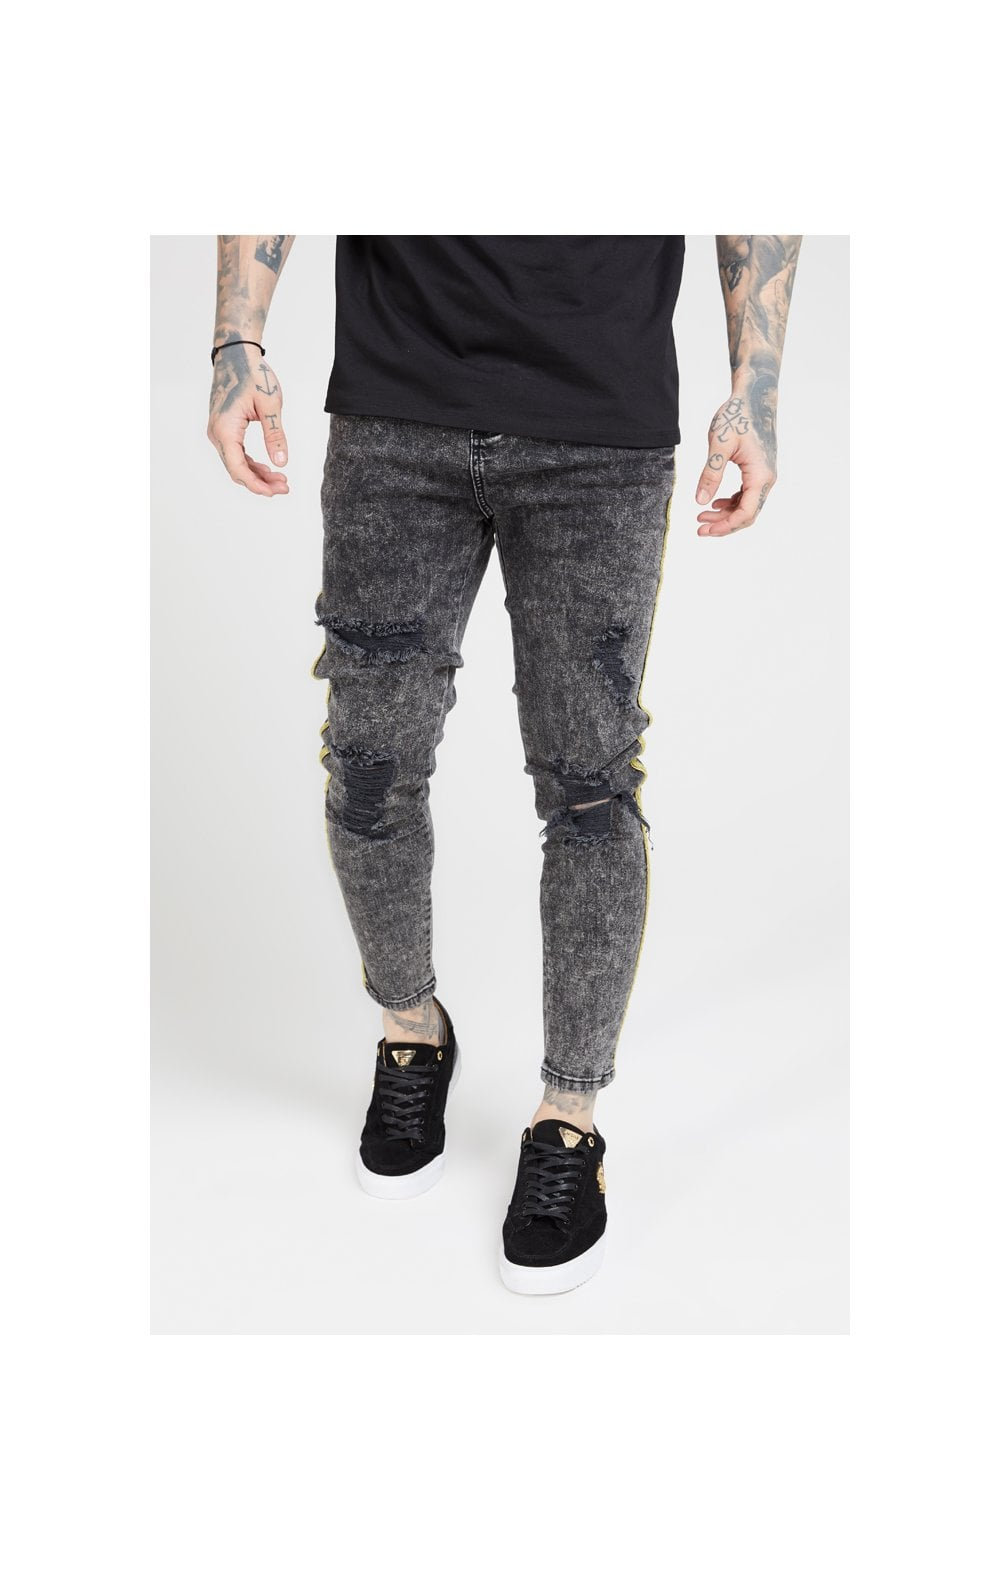 Load image into Gallery viewer, SikSilk Distressed Skinny Taped Denims - Faded Grey